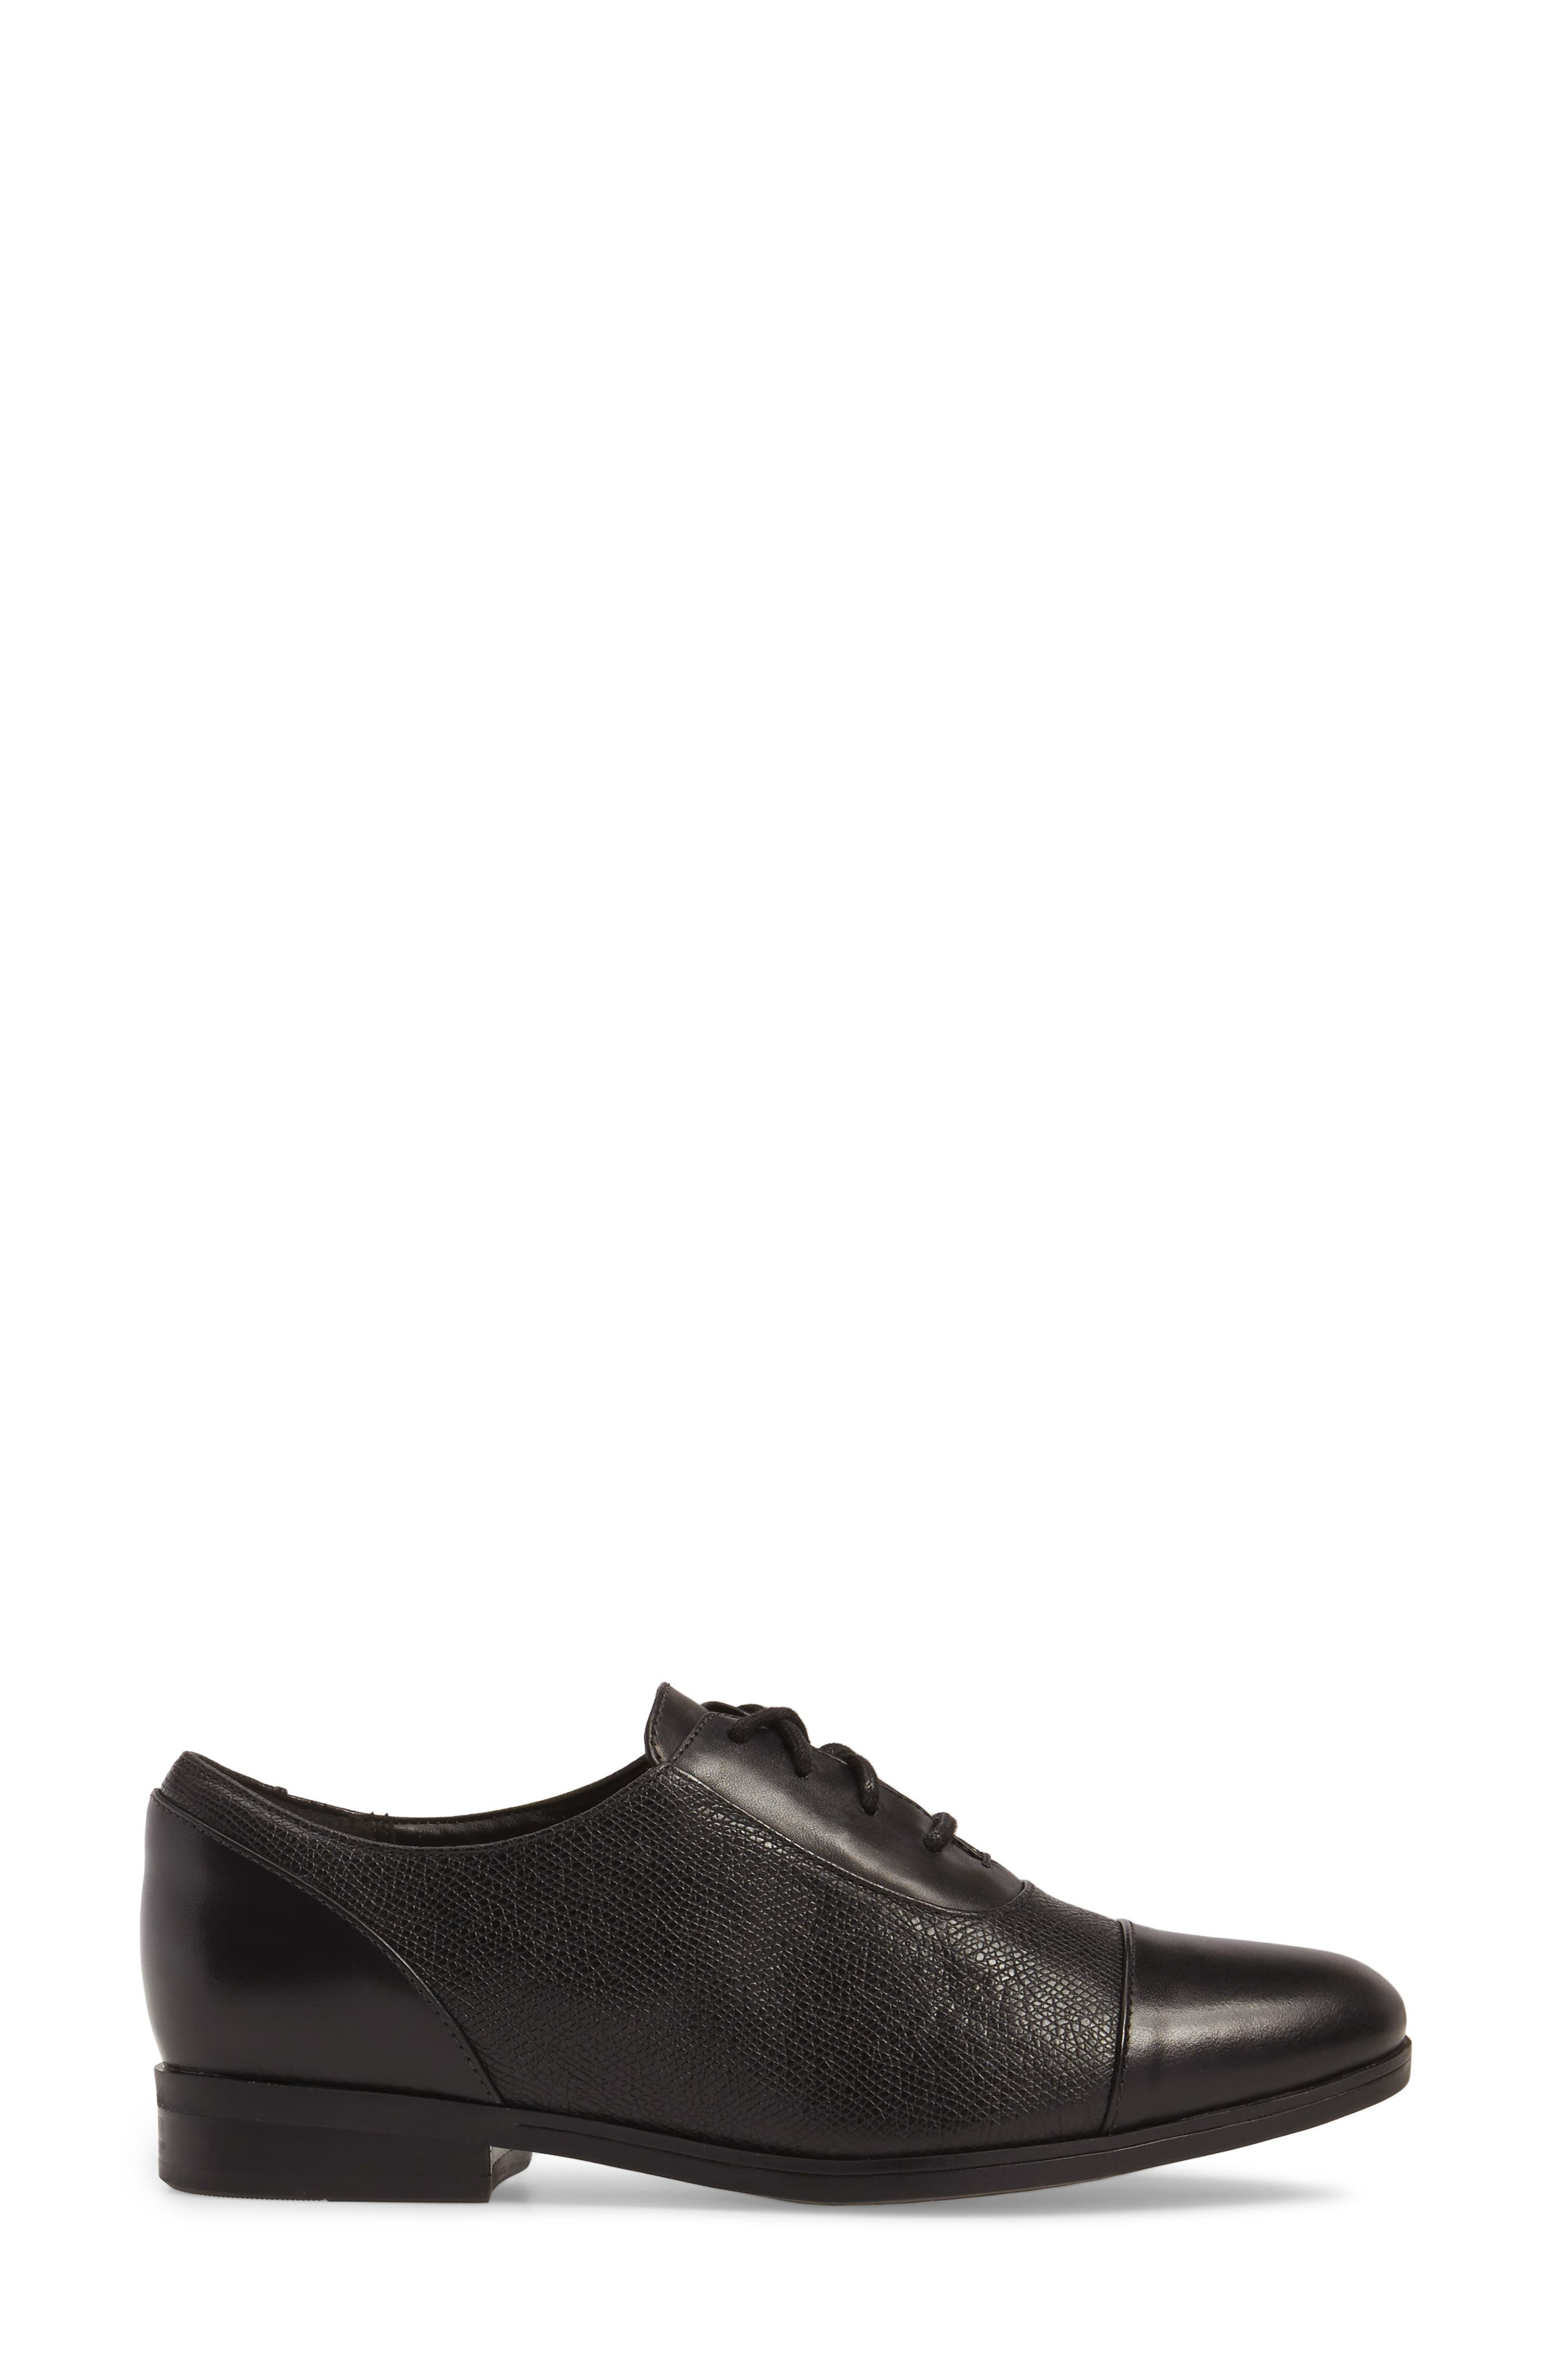 Tilmont Ivy Oxford,                             Alternate thumbnail 3, color,                             BLACK LEATHER